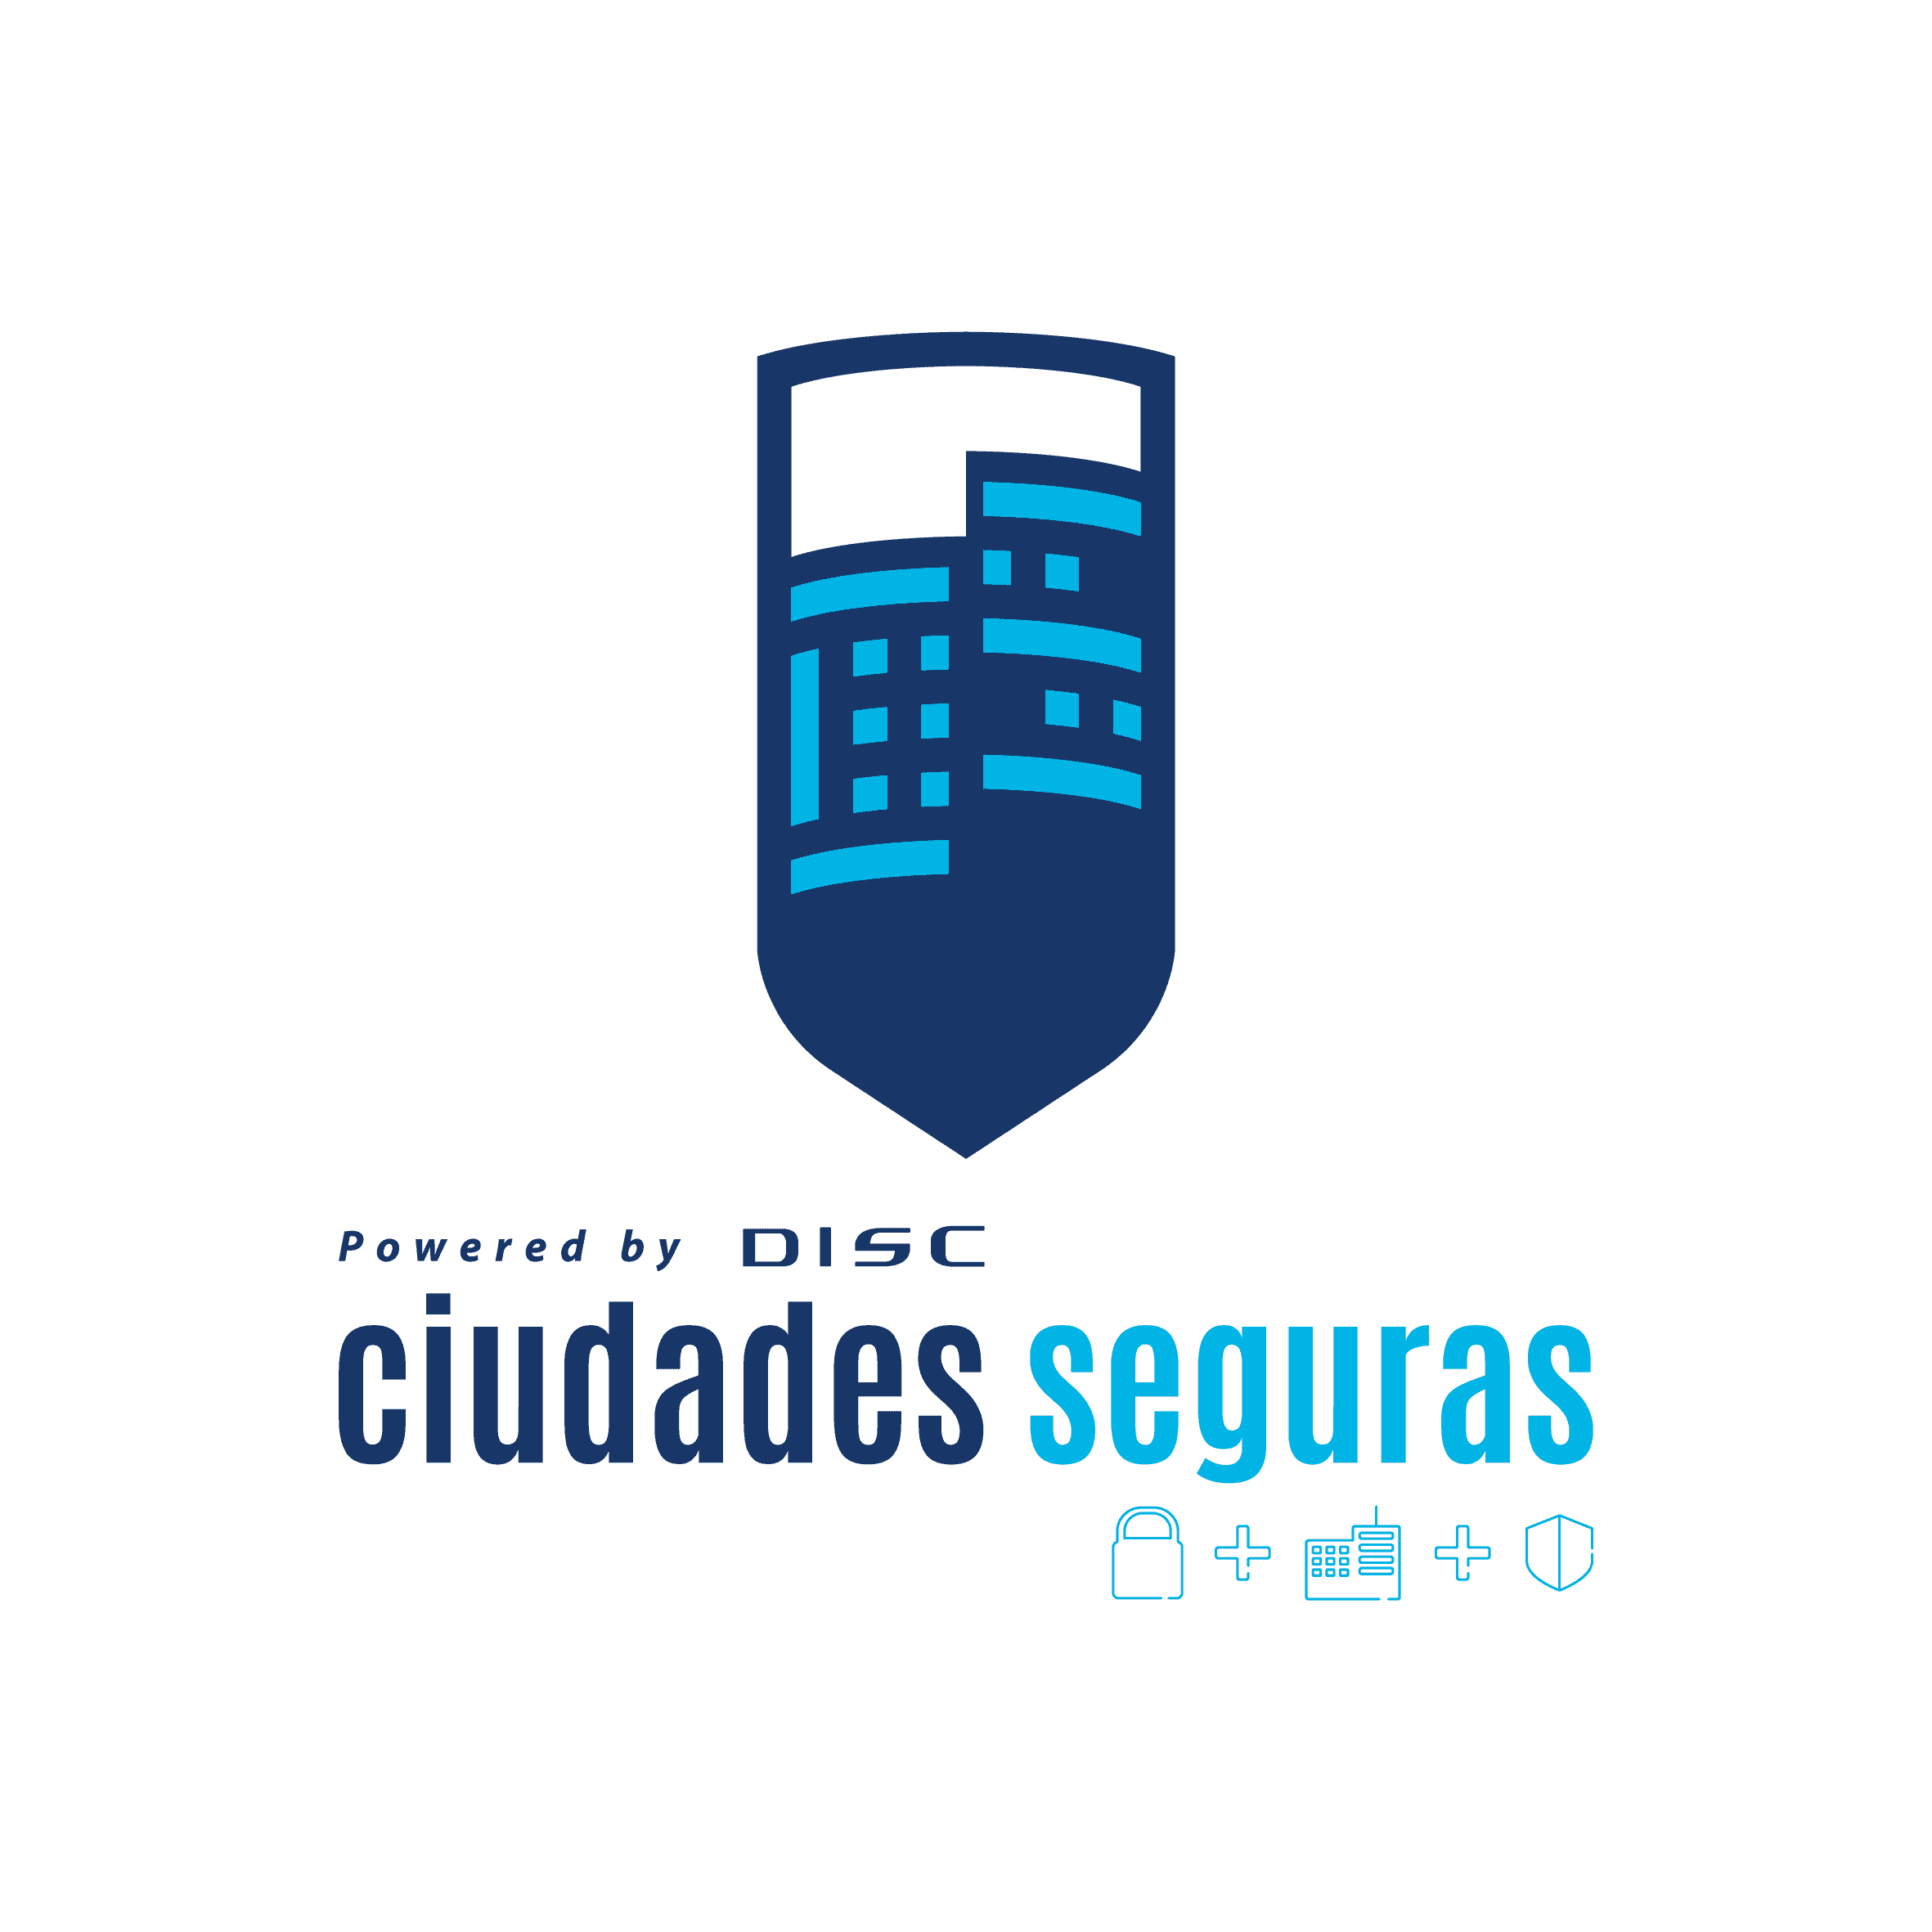 PROYECTOS DE SAFE CITY DISC